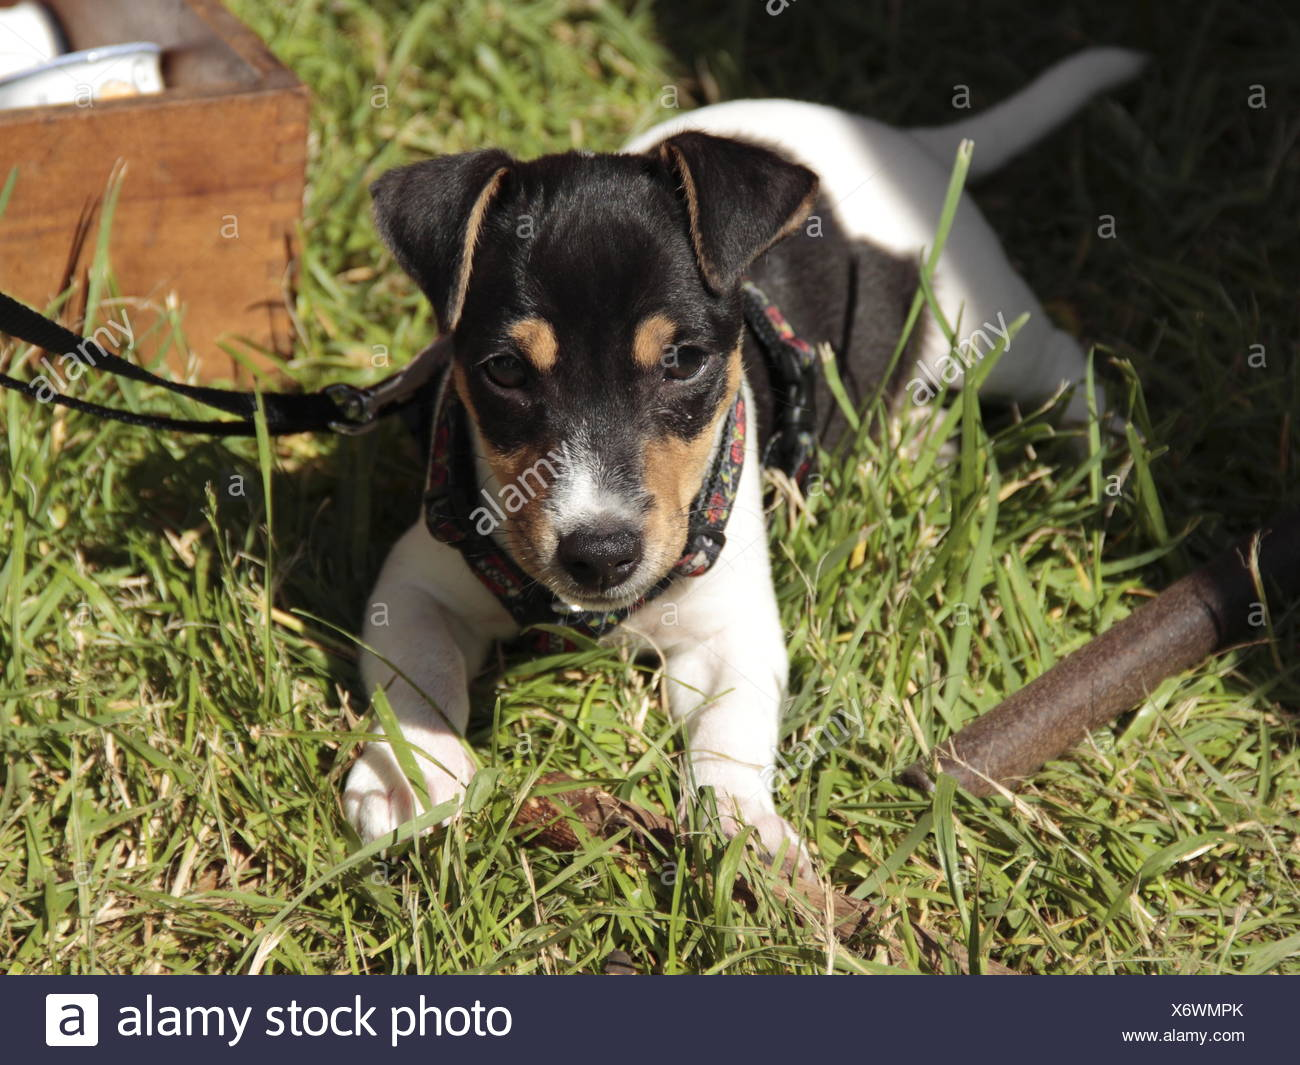 pup - Stock Image